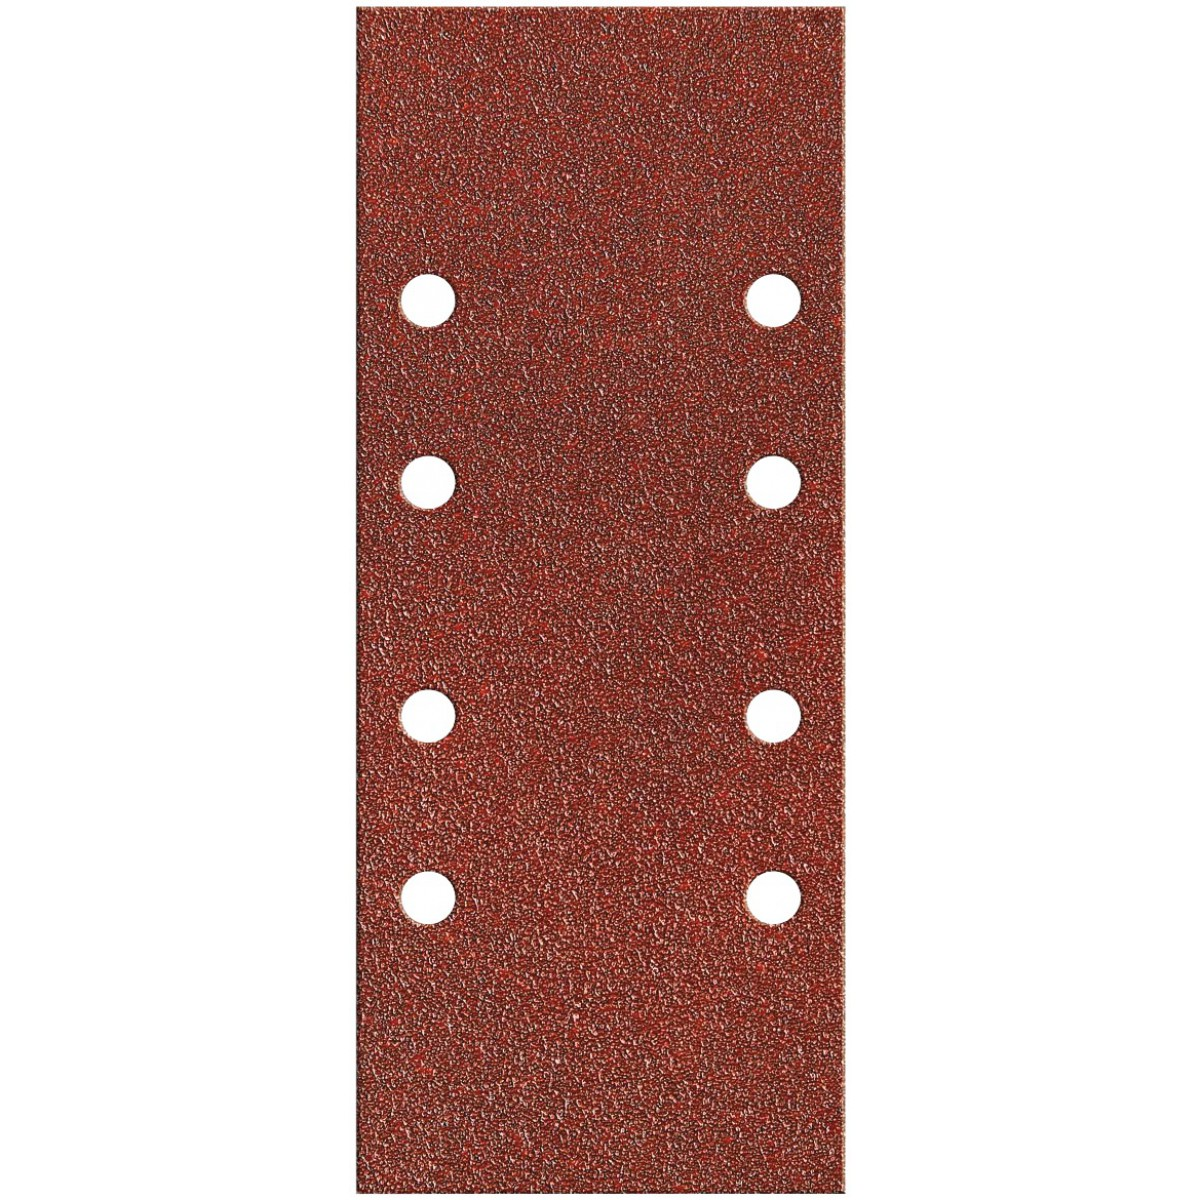 Patin auto-agrippant 93 x 185 mm 8 trous SCID - Grain 40 - Vendu par 8